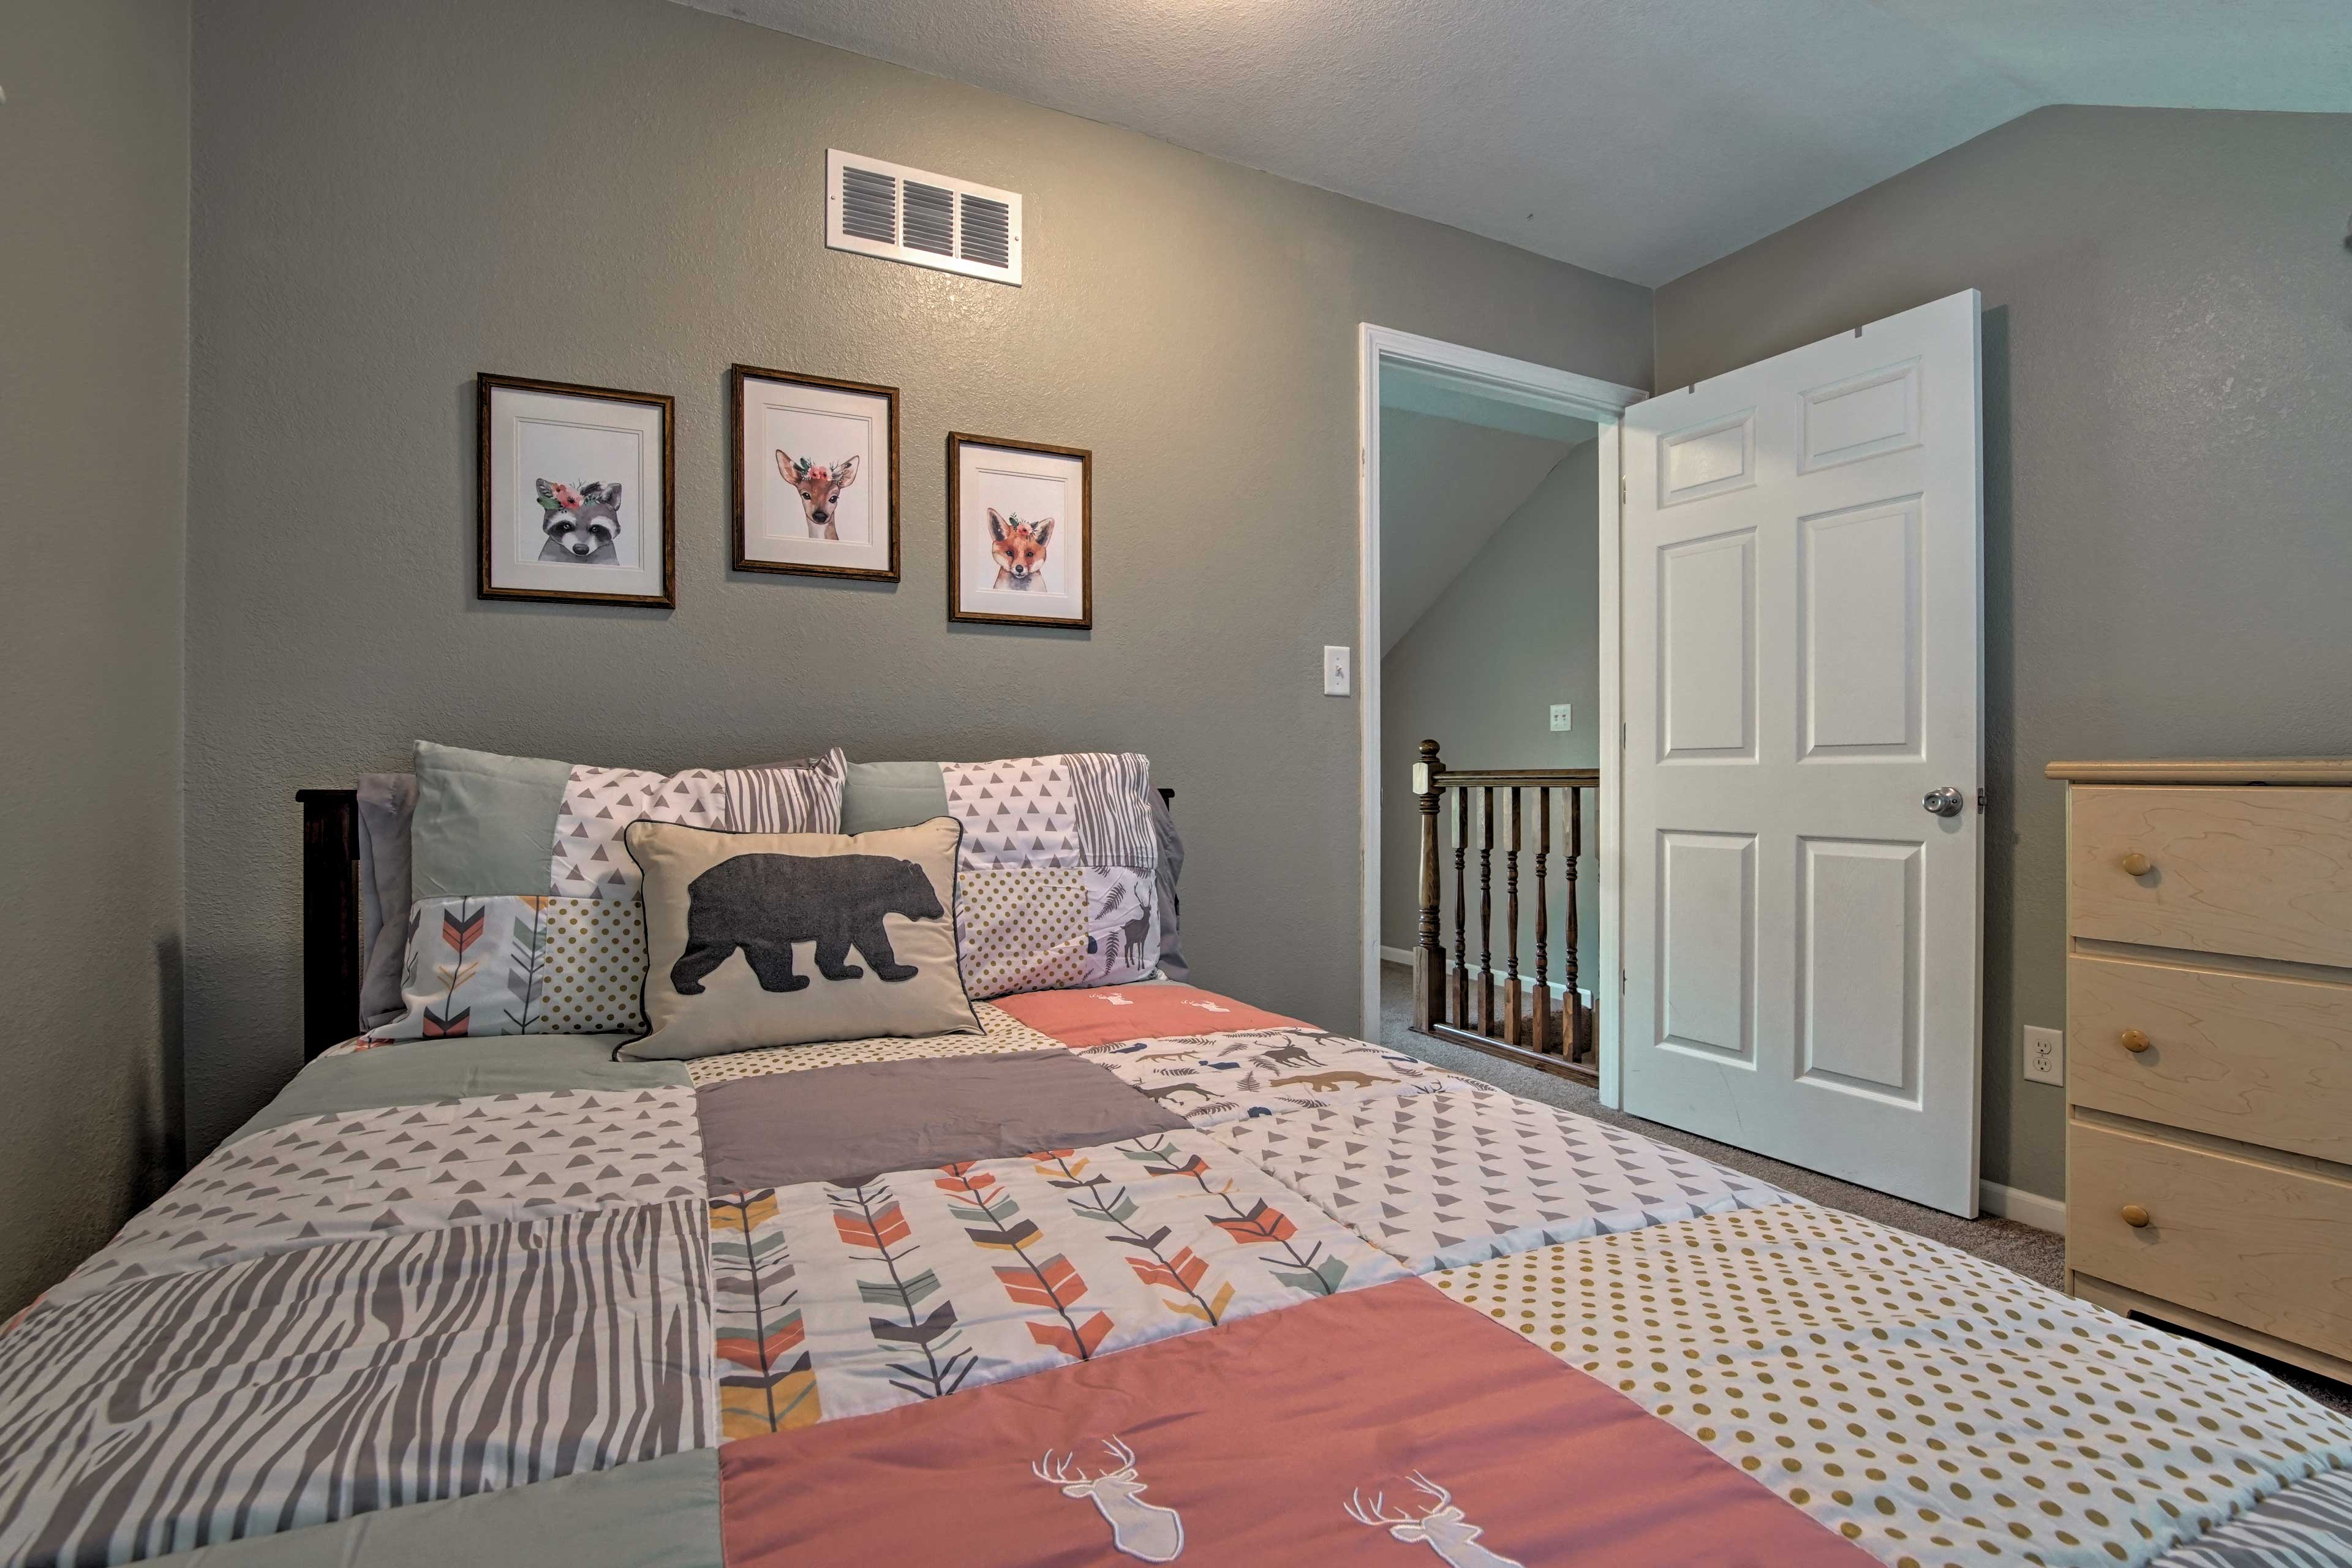 Your little one will love sleeping in this wilderness-themed room.